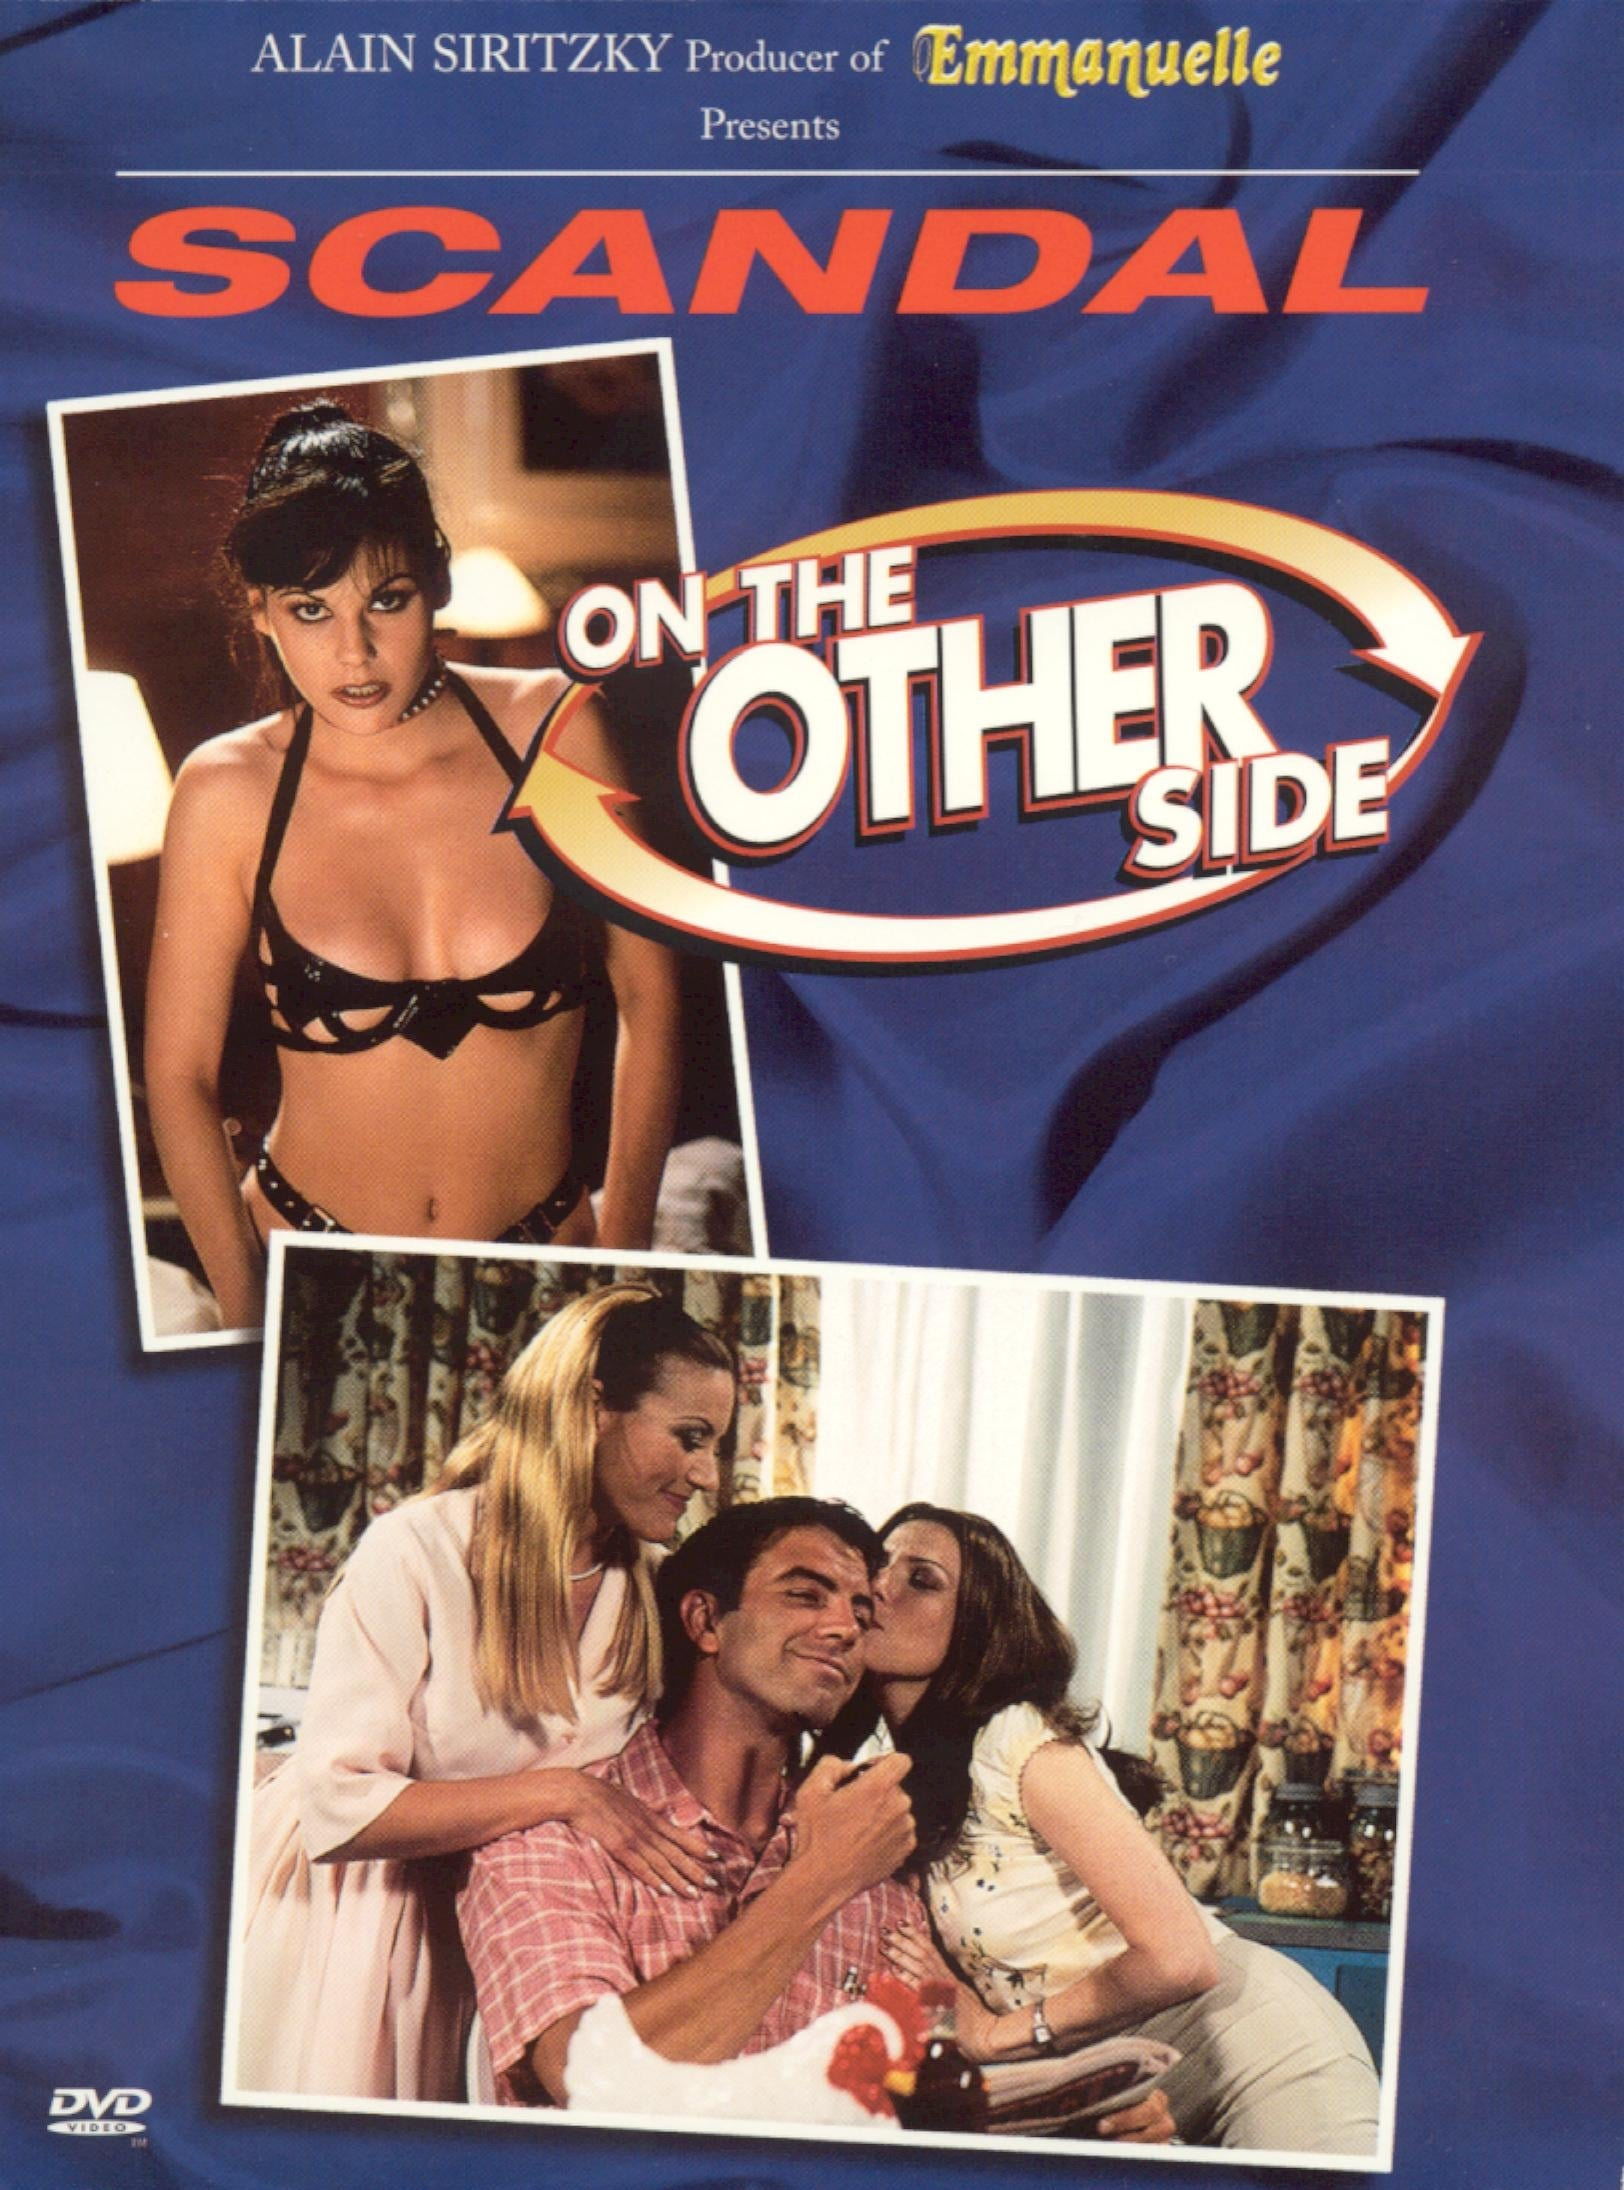 Scandal: On the Other Side (1999)